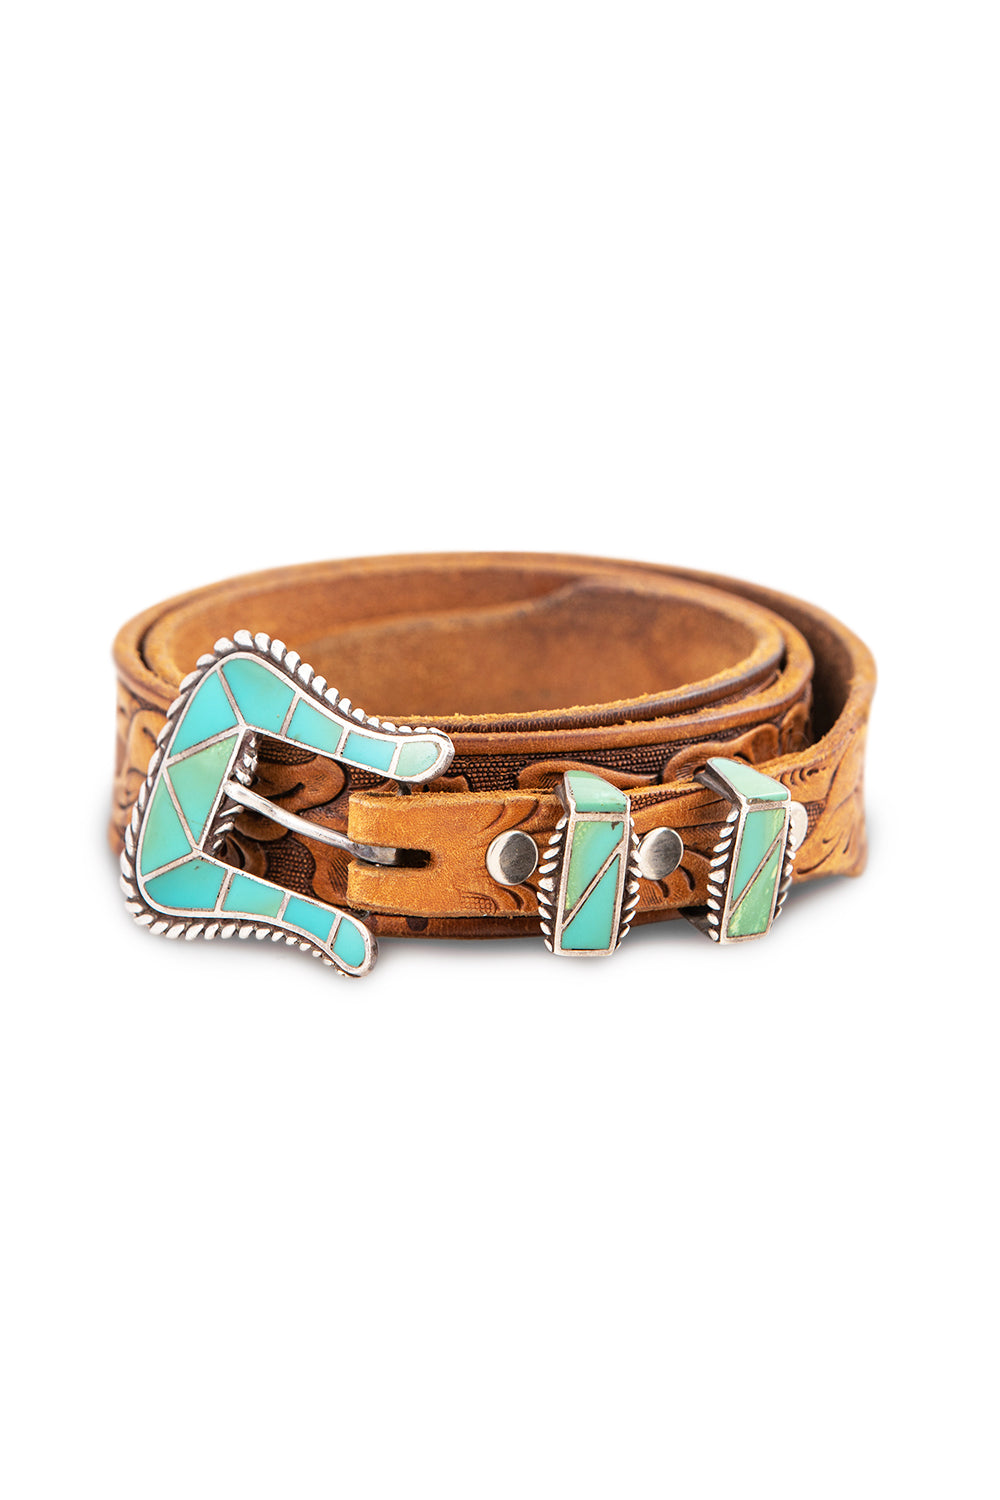 Belt, Buckle, Ranger, Turquoise, Inlay, Zuni, Vintage, 787